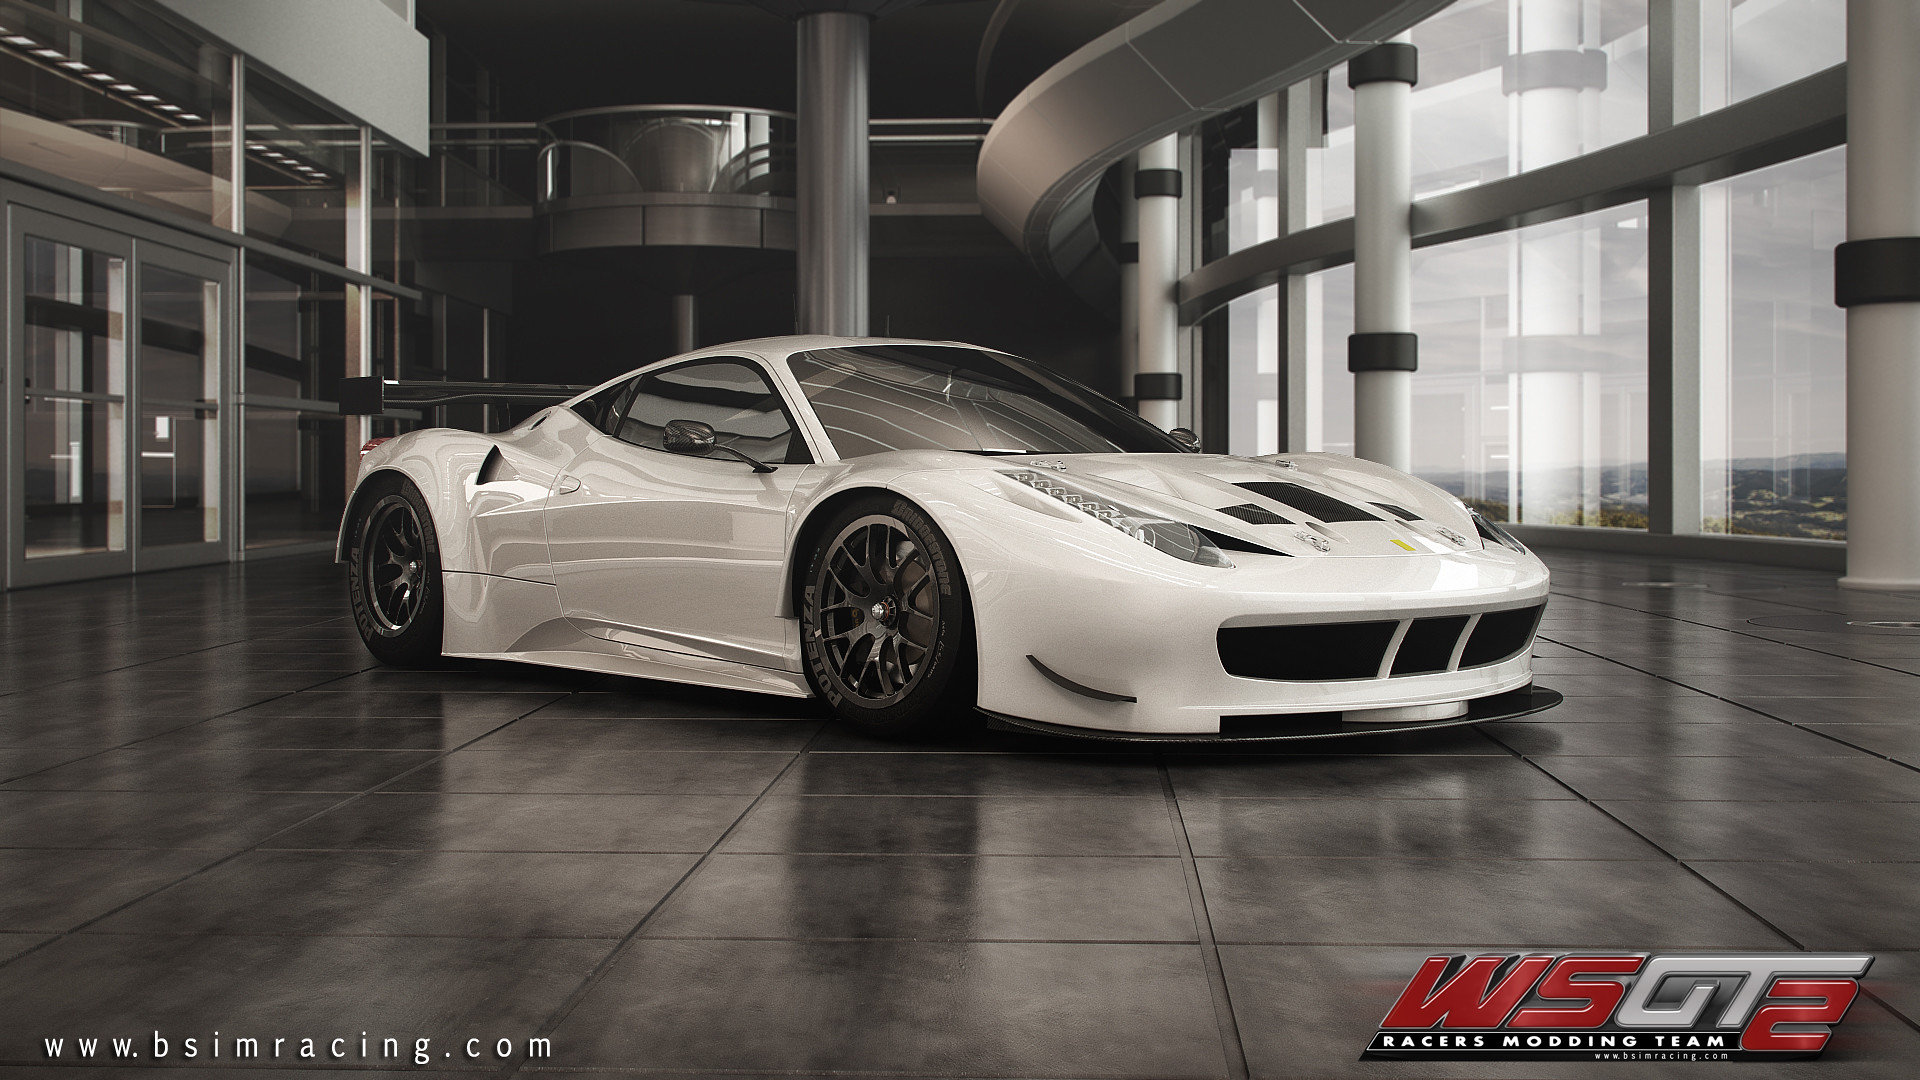 458GTC_showroom_2012-02-06_PP(1) (1)